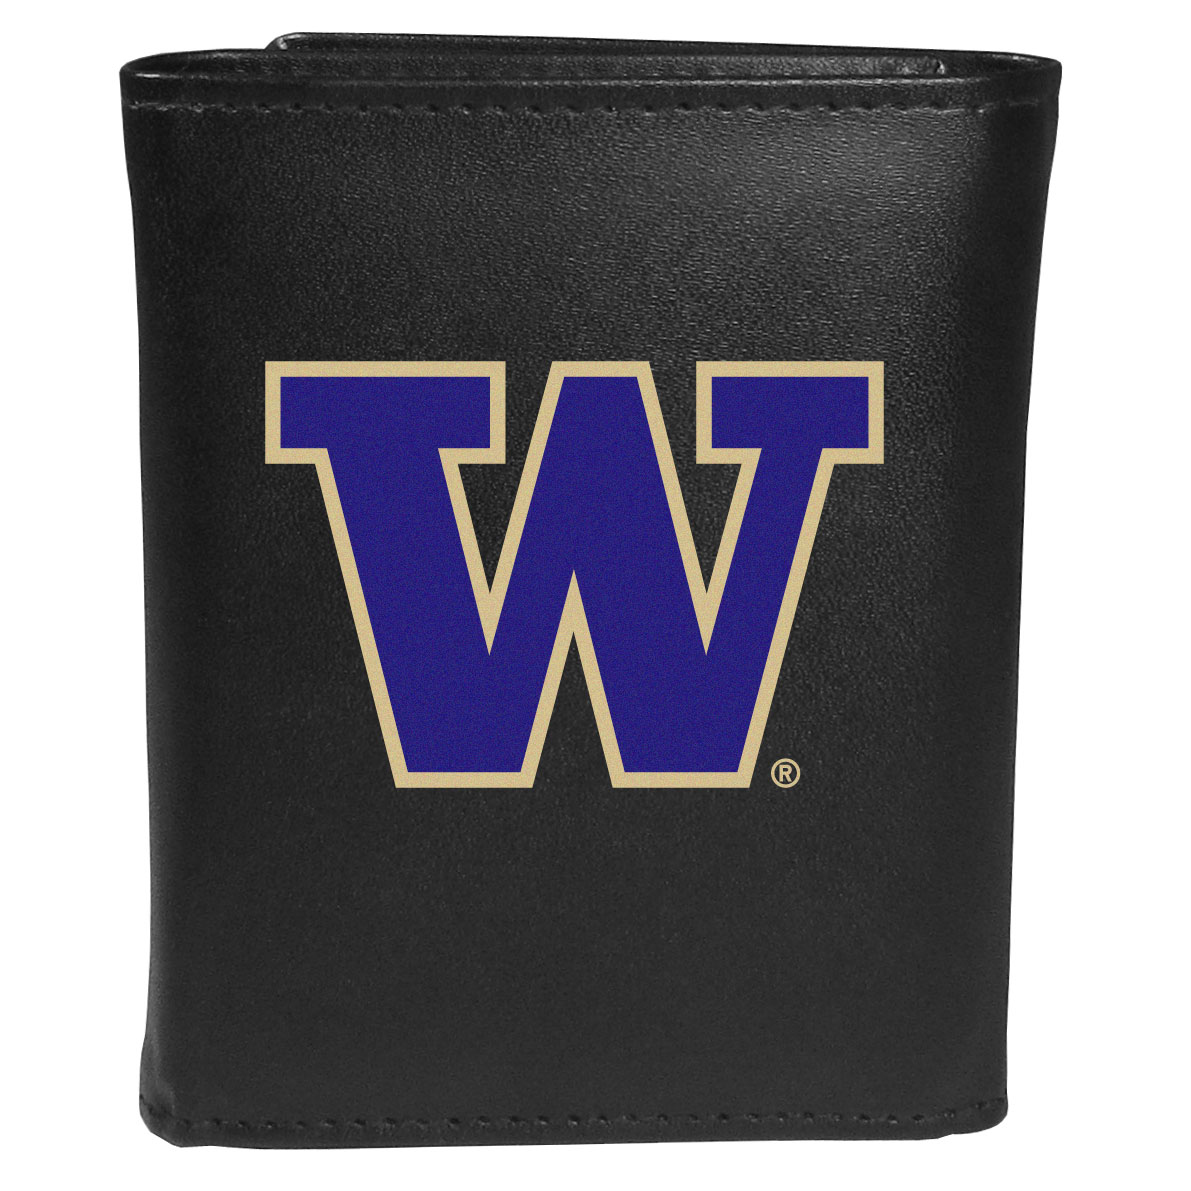 Washington Huskies Leather Tri-fold Wallet, Large Logo - Our classic fine leather tri-fold wallet is meticulously crafted with genuine leather that will age beautifully so you will have a quality wallet for years to come. This is fan apparel at its finest. The wallet is packed with organizational  features; lots of credit card slots, large billfold pocket, and a window ID slot. The front of the wallet features an extra large Washington Huskies printed logo.